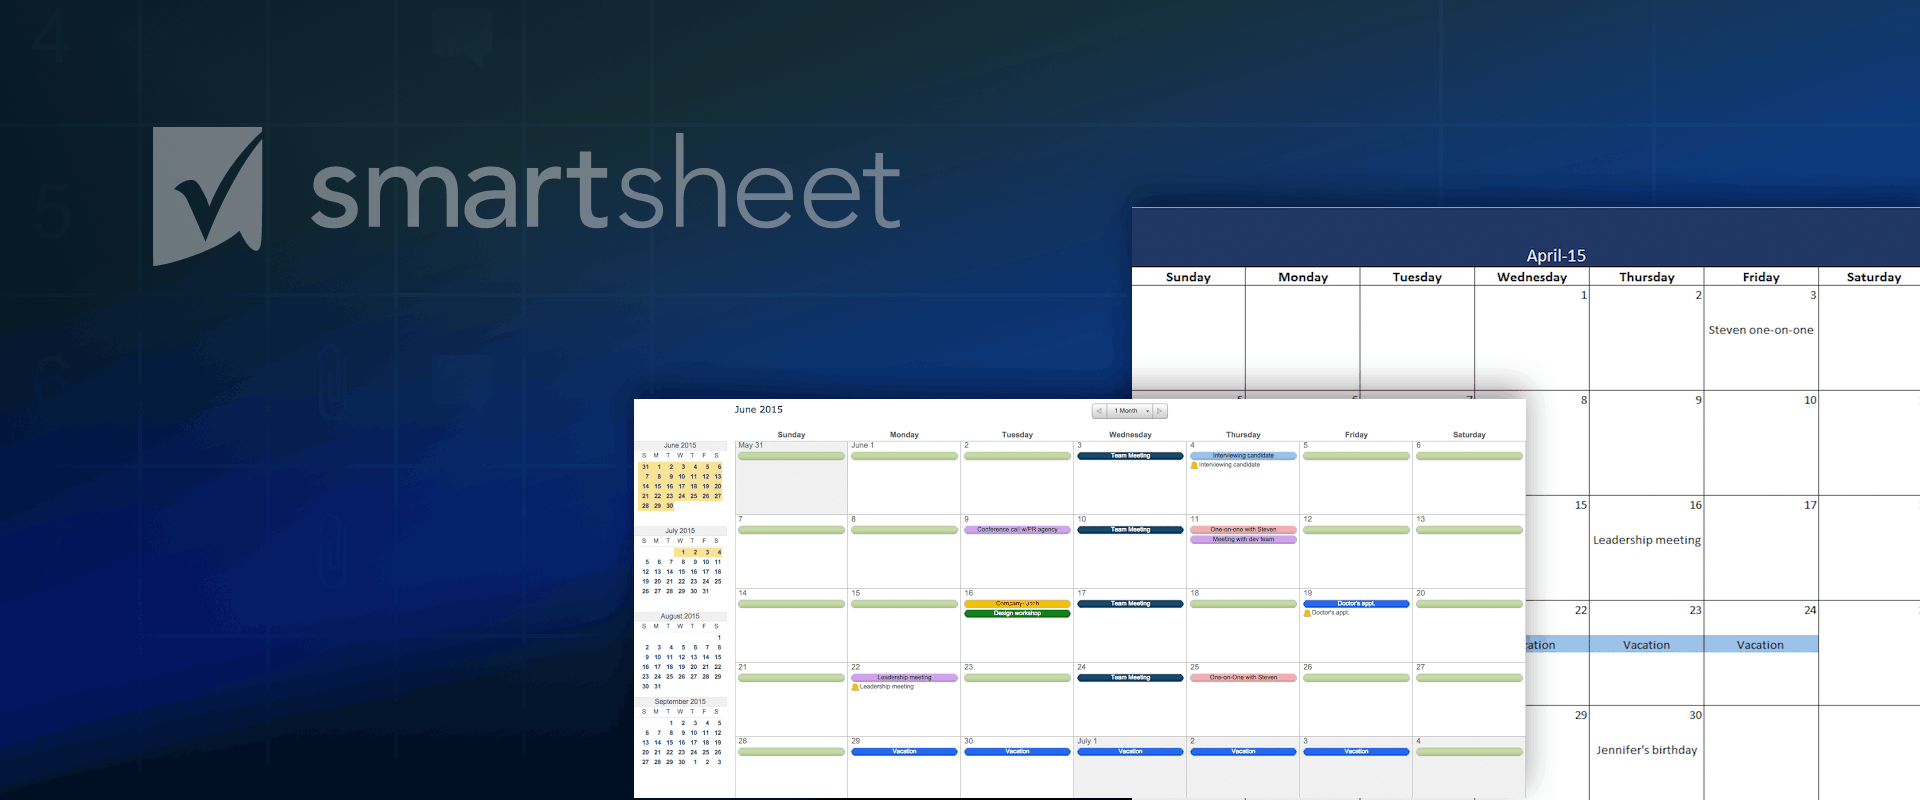 Ediblewildsus  Gorgeous Make A  Calendar In Excel Includes Free Template With Likable Excel Ipad Free Besides Excel Split Columns Furthermore Round To Nearest Tenth Excel With Archaic Interactive Excel Spreadsheet Also Correlation Test Excel In Addition Simulation Excel And Excel  Pick From Drop Down List As Well As Download Powerpivot Excel  Additionally Calender Excel From Smartsheetcom With Ediblewildsus  Likable Make A  Calendar In Excel Includes Free Template With Archaic Excel Ipad Free Besides Excel Split Columns Furthermore Round To Nearest Tenth Excel And Gorgeous Interactive Excel Spreadsheet Also Correlation Test Excel In Addition Simulation Excel From Smartsheetcom